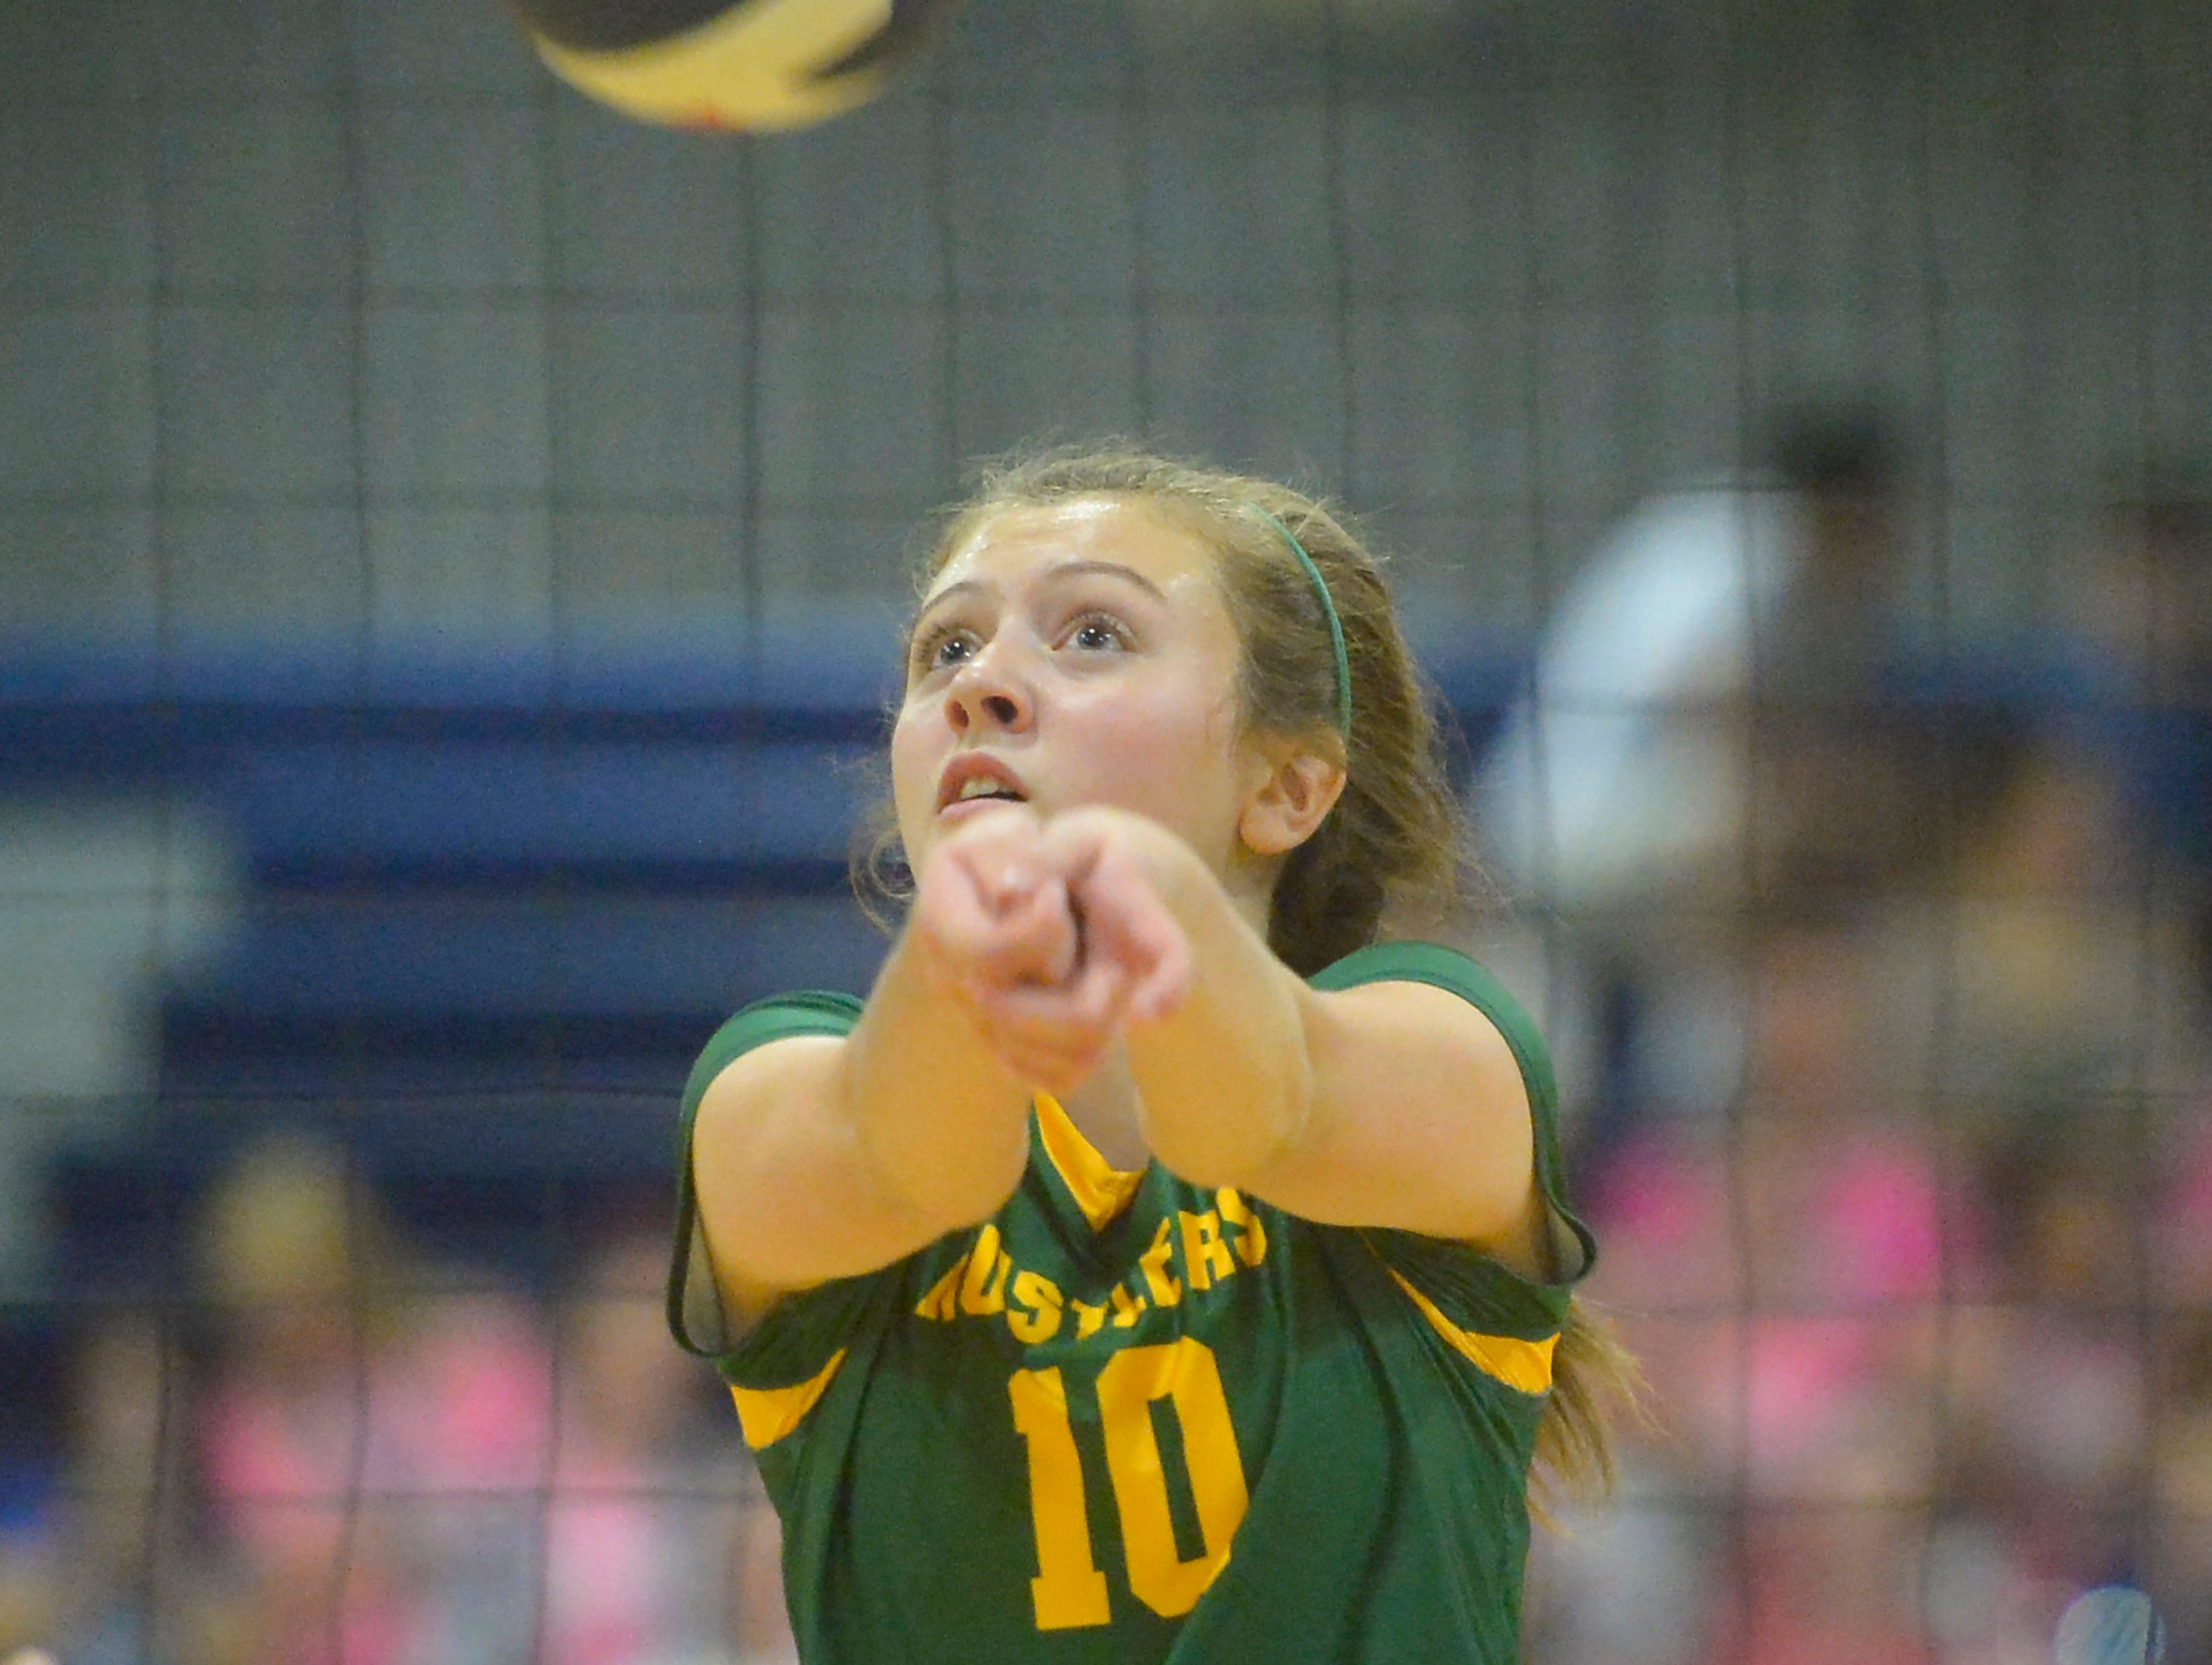 CMR's Tennisen Hiller during the crosstown volleyball match in the Swarthout Fieldhouse, Tuesday.